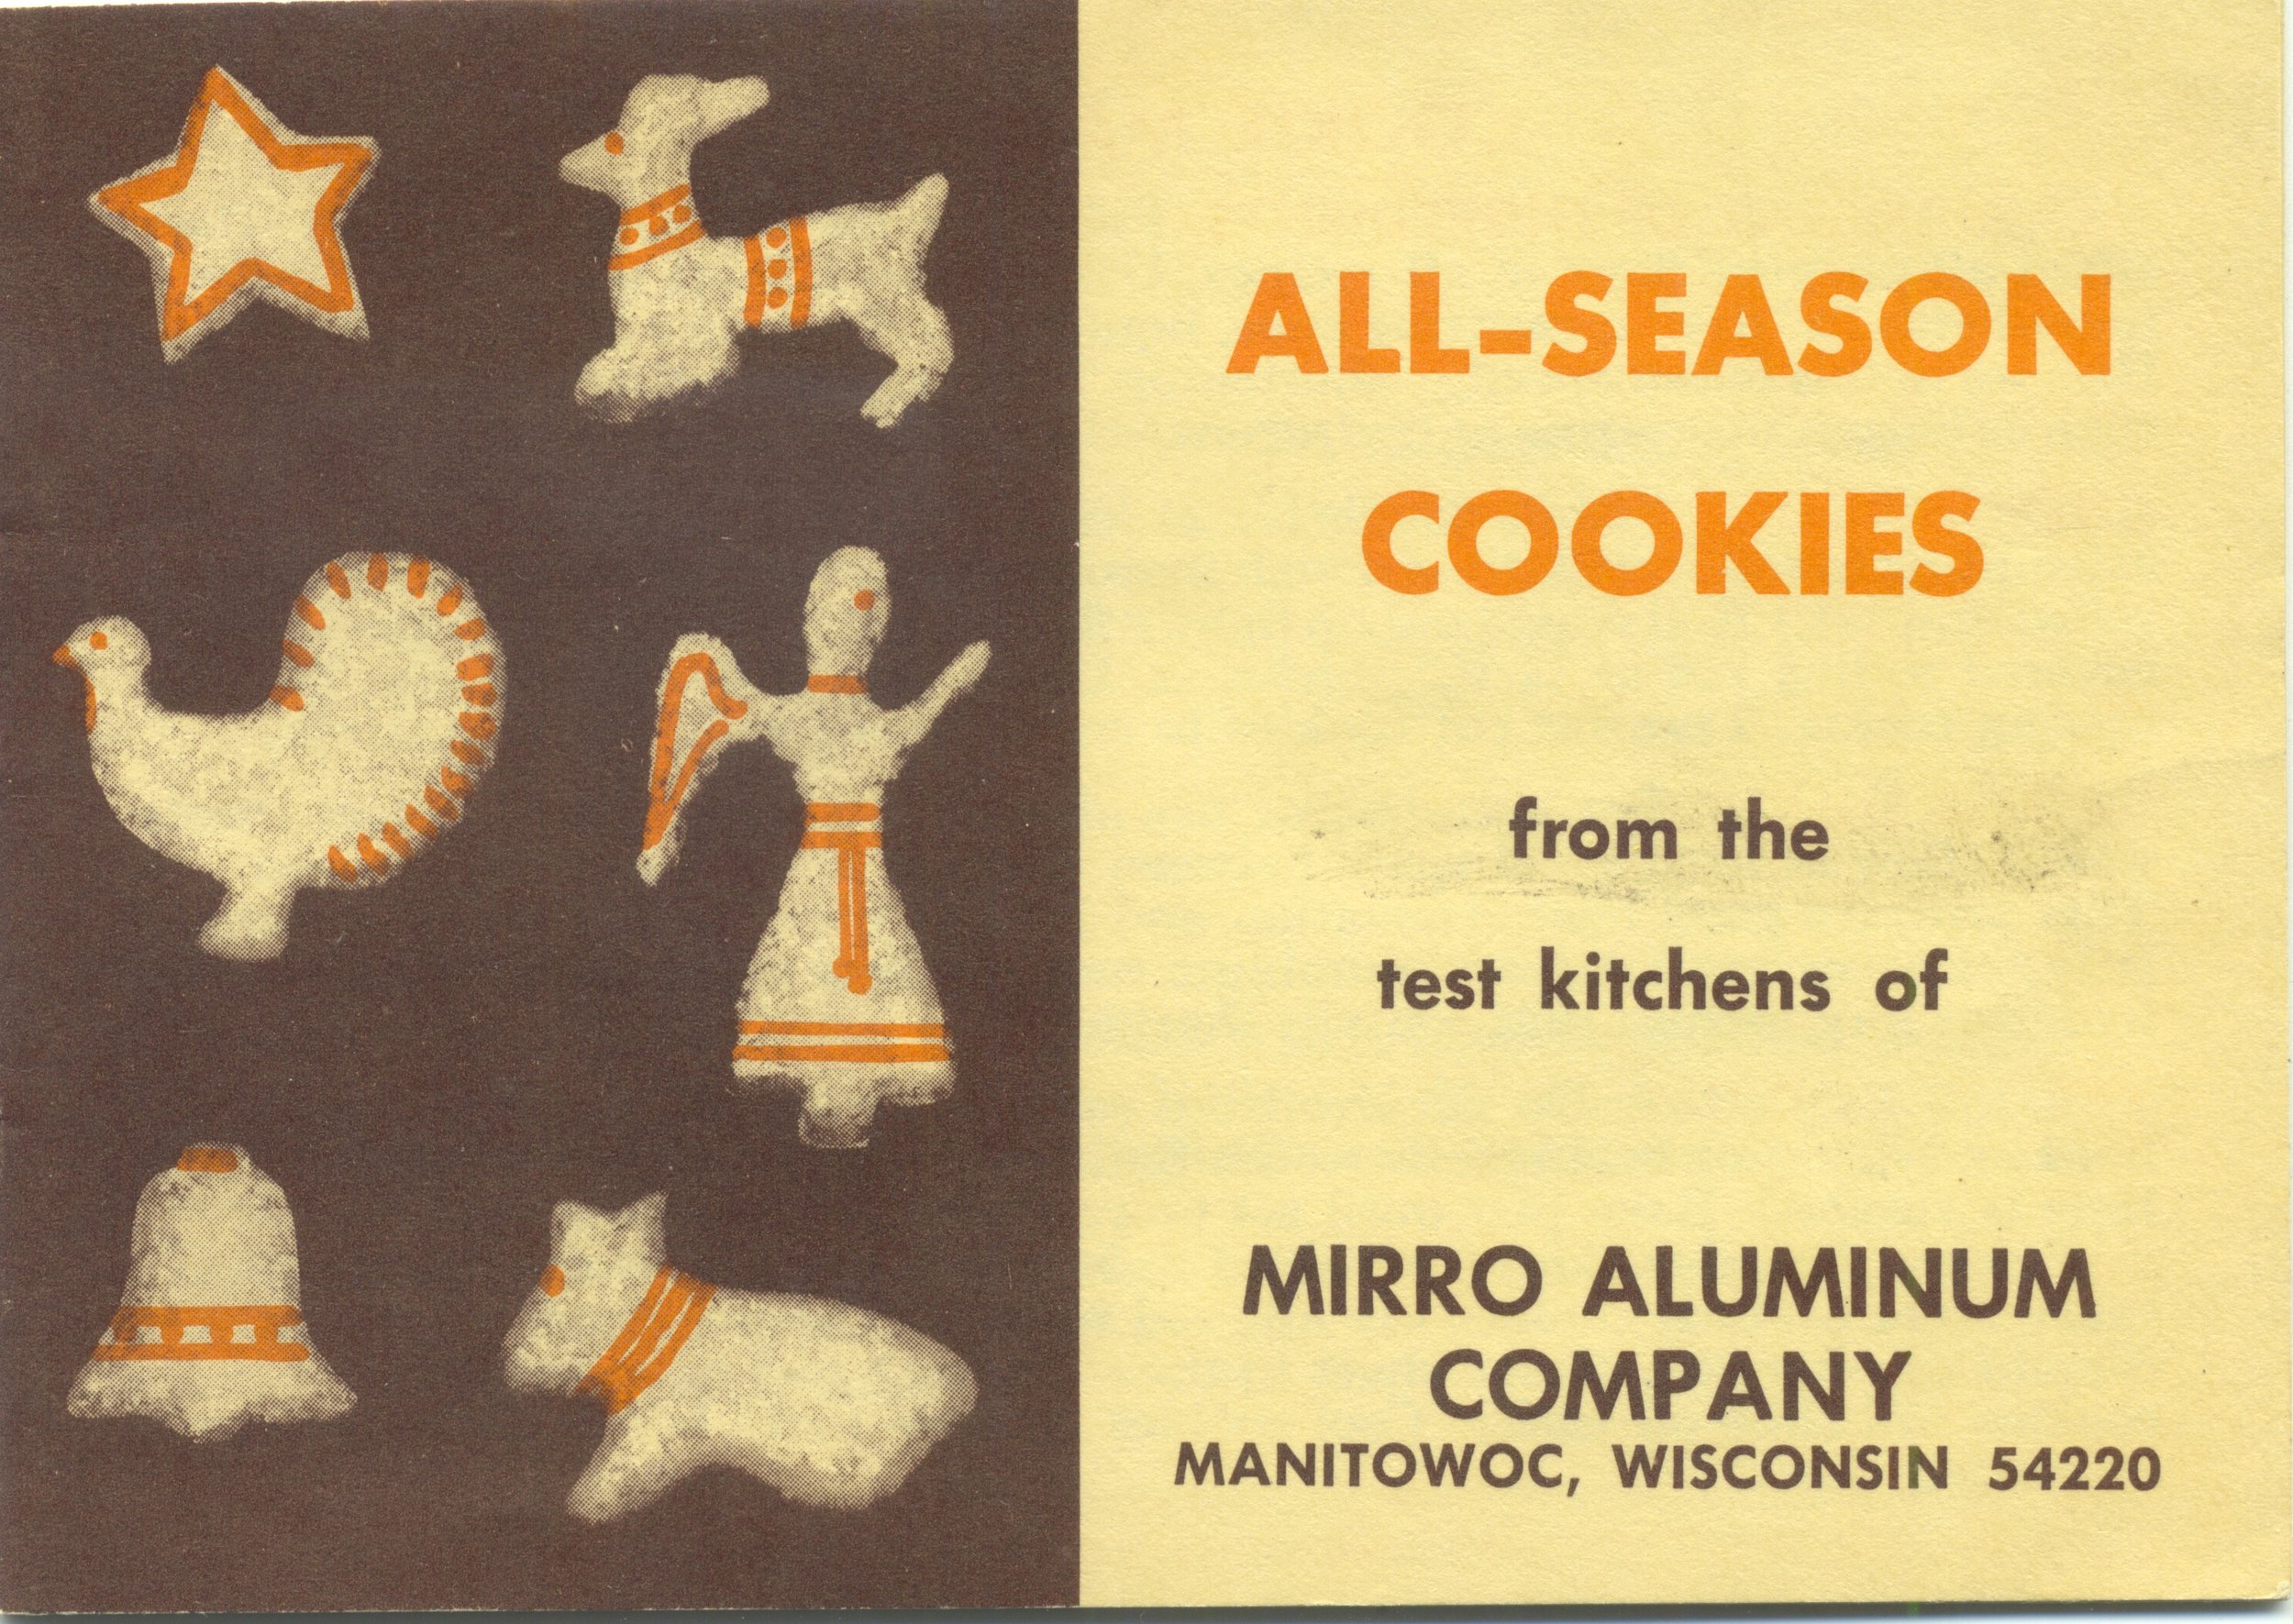 All-Season Cookies booklet from the test kitchens of the Mirro Aluminum Company, maker of most of the cookie cutters